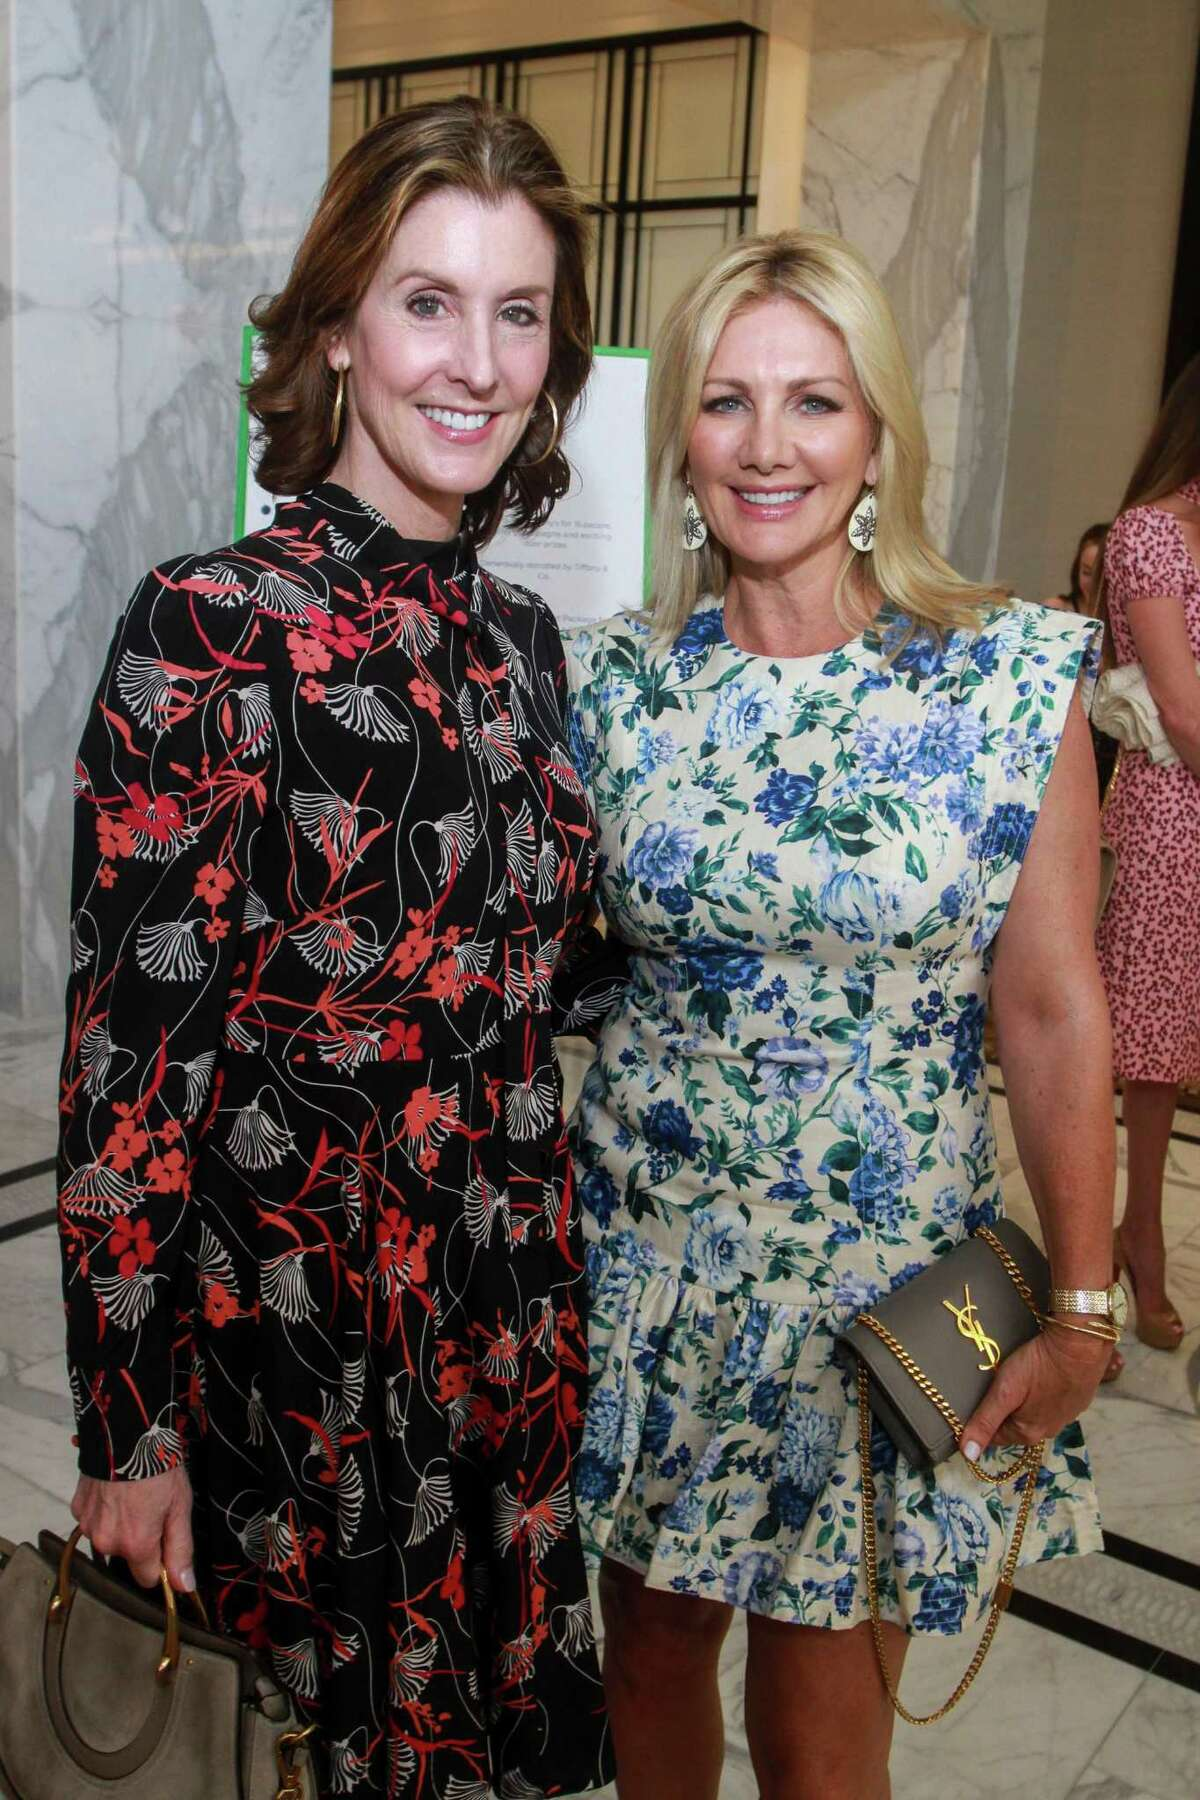 Phoebe Tudor, left, and Anne Carl at the Children's Assessment Center's 20th Annual Spirit of Spring Luncheon & Fashion Show.